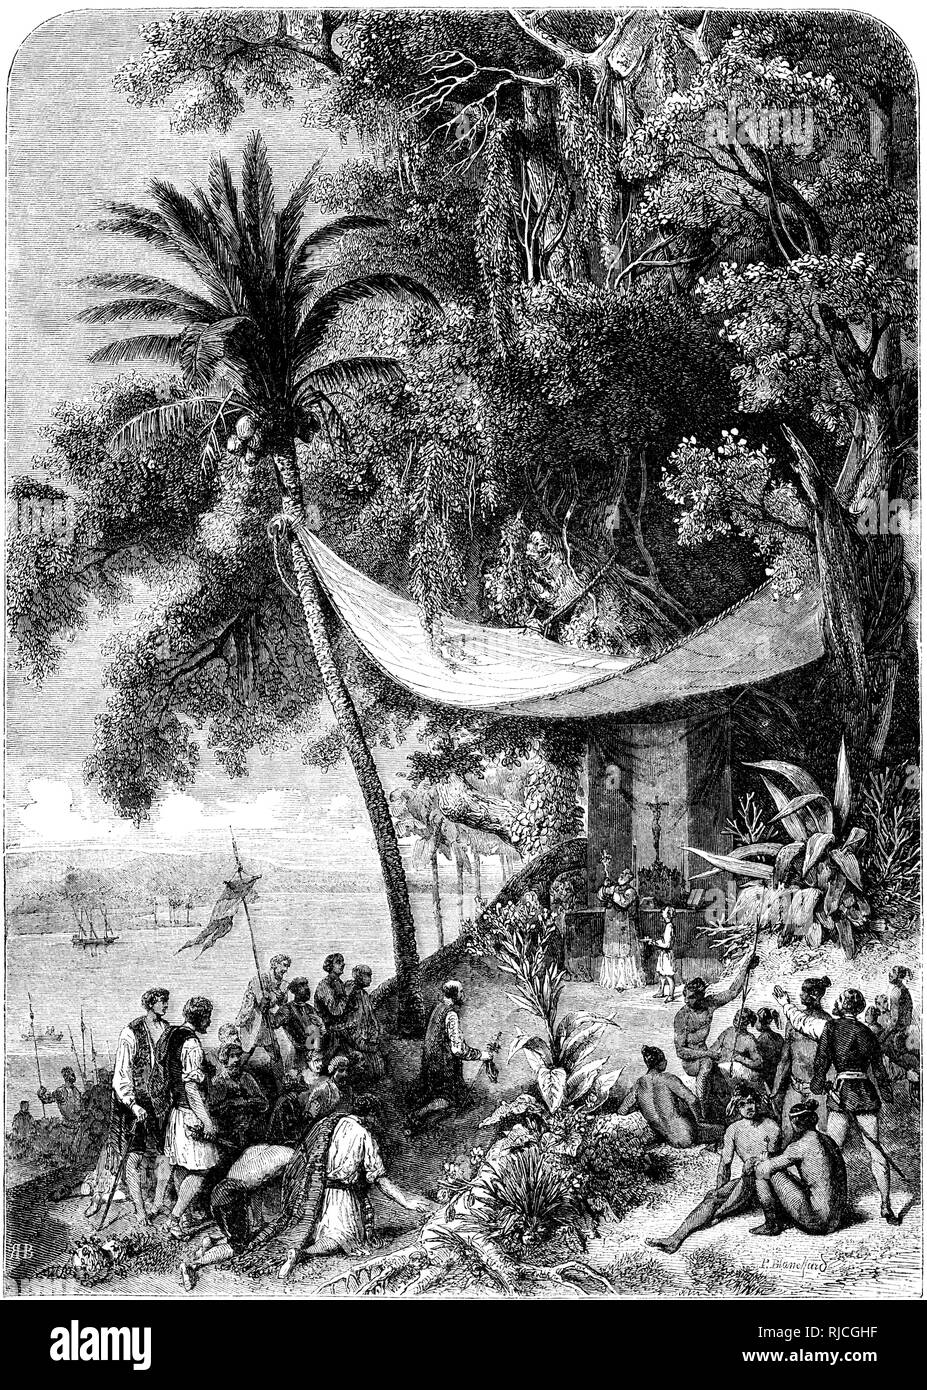 Christopher Columbus' second voyage, the first mass said on American soil. A priest holds up a crucifix as sailors kneel in prayer and to listen, and native people sit in a gathering. Stock Photo